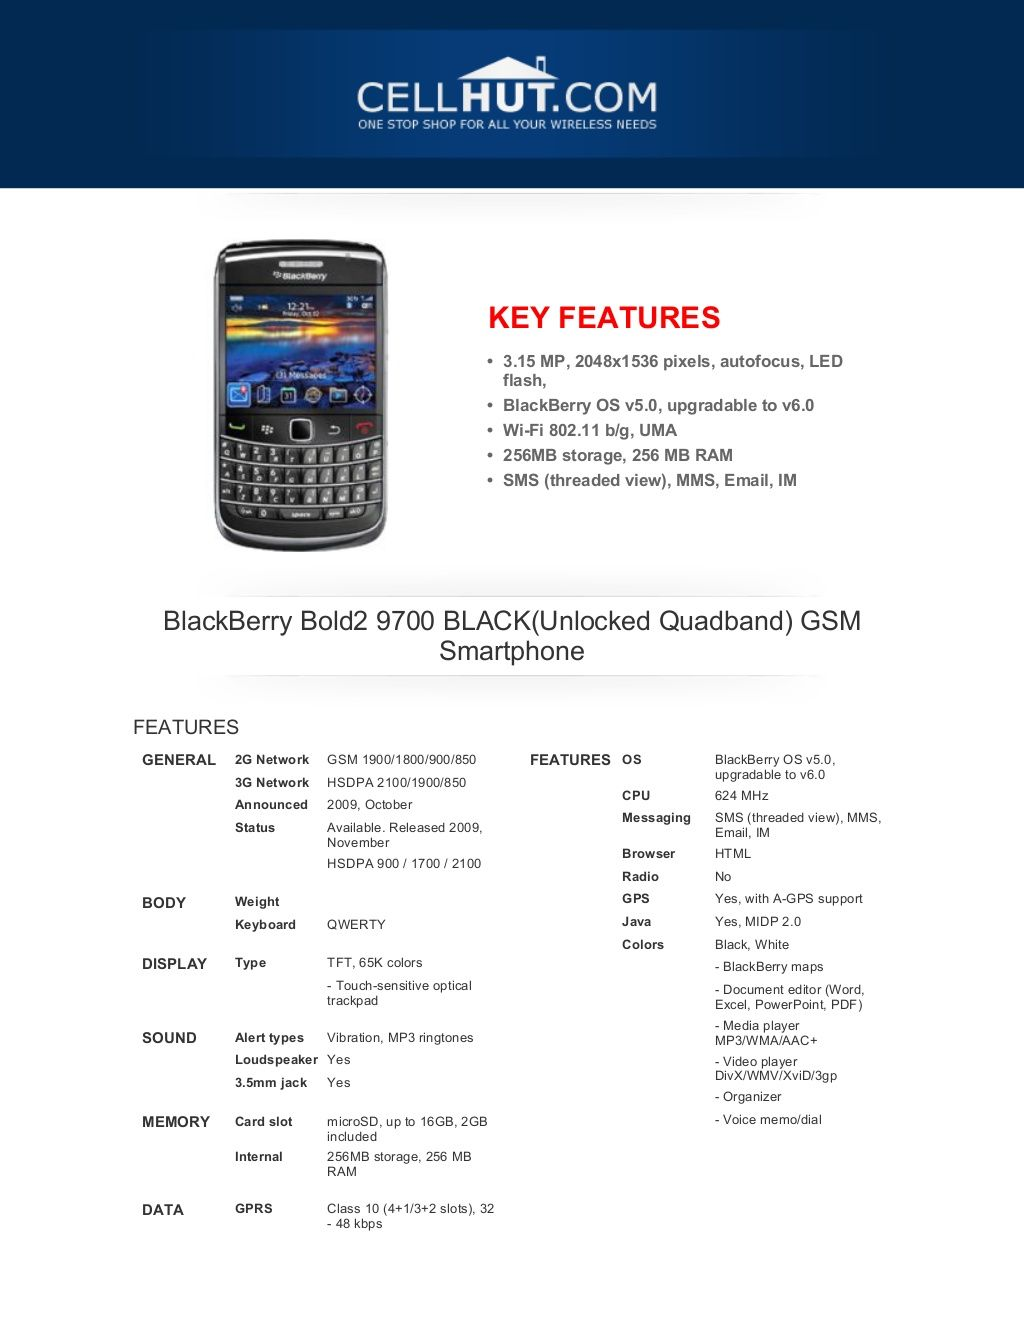 blackberry-bold2-9700-black-gsm-smartphonefeaturesspecificationat